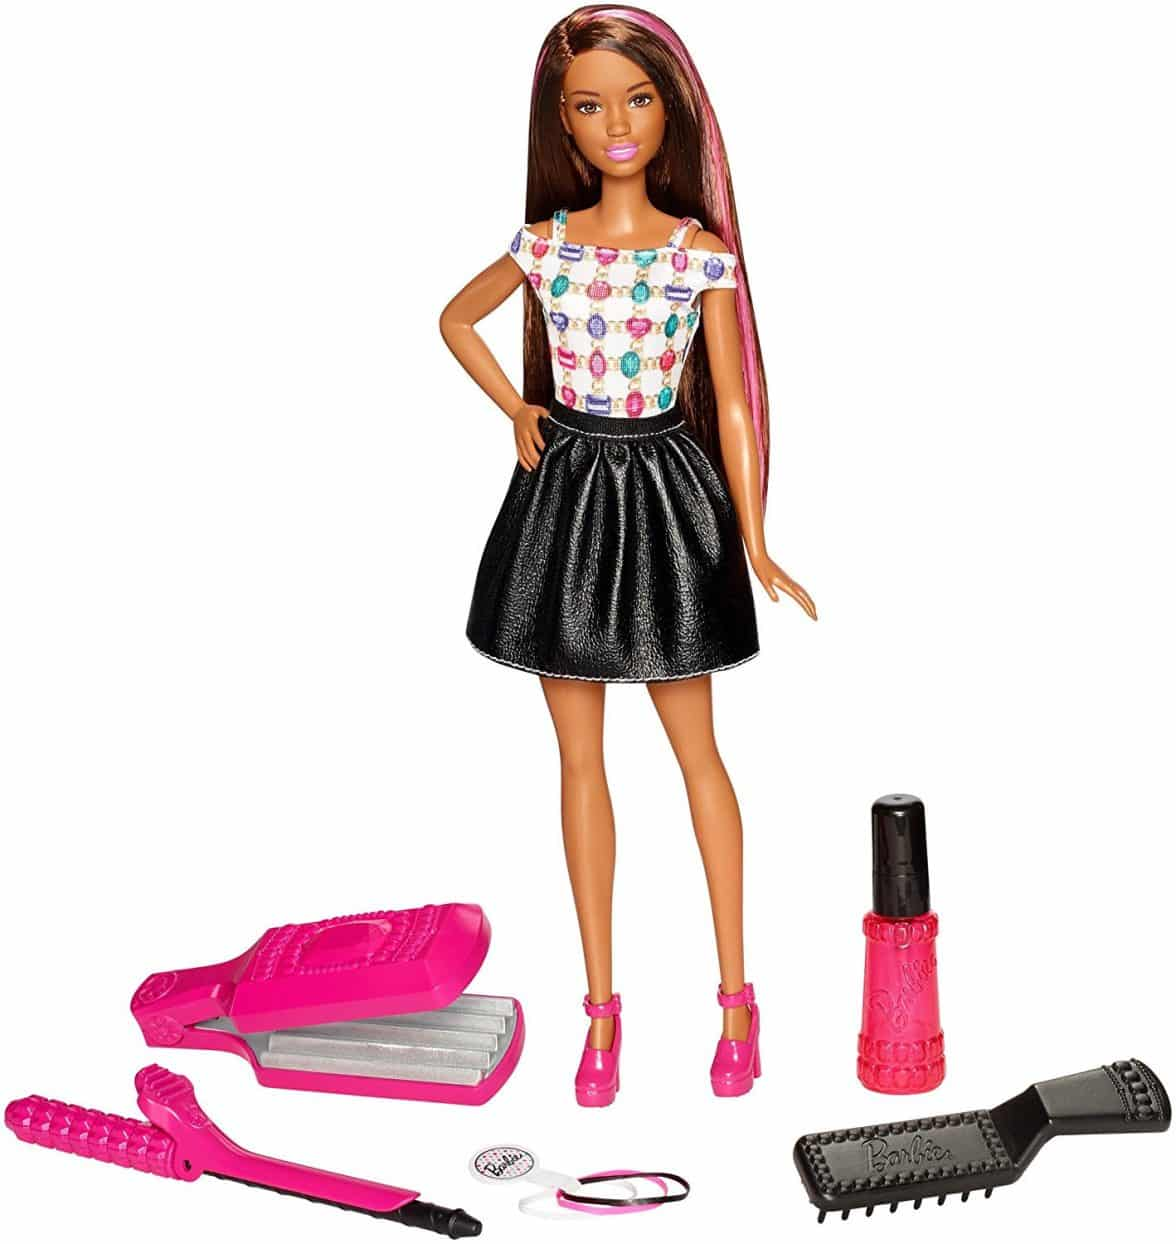 Barbie D I Y Crimps Amp Curls Doll Barbie Collectibles